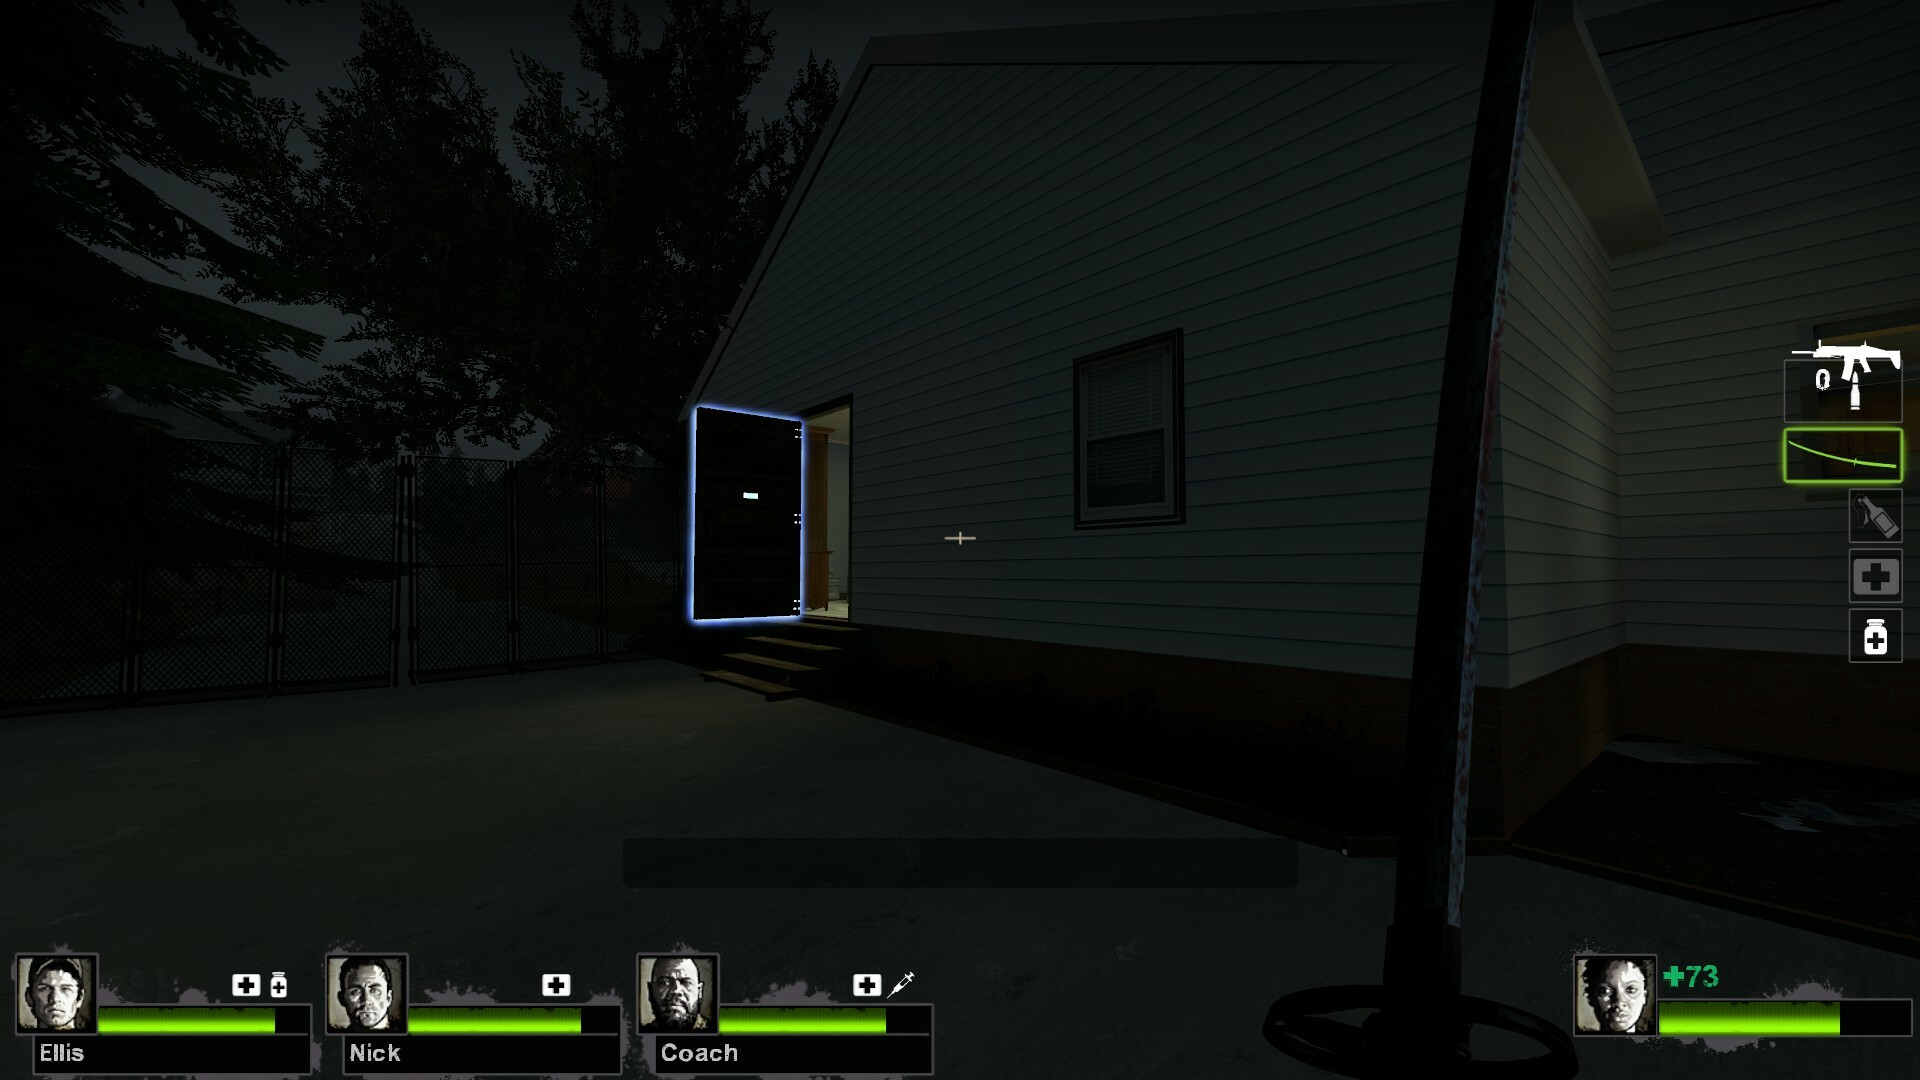 A large highlighted door helps direct players to the safe house after following the light.